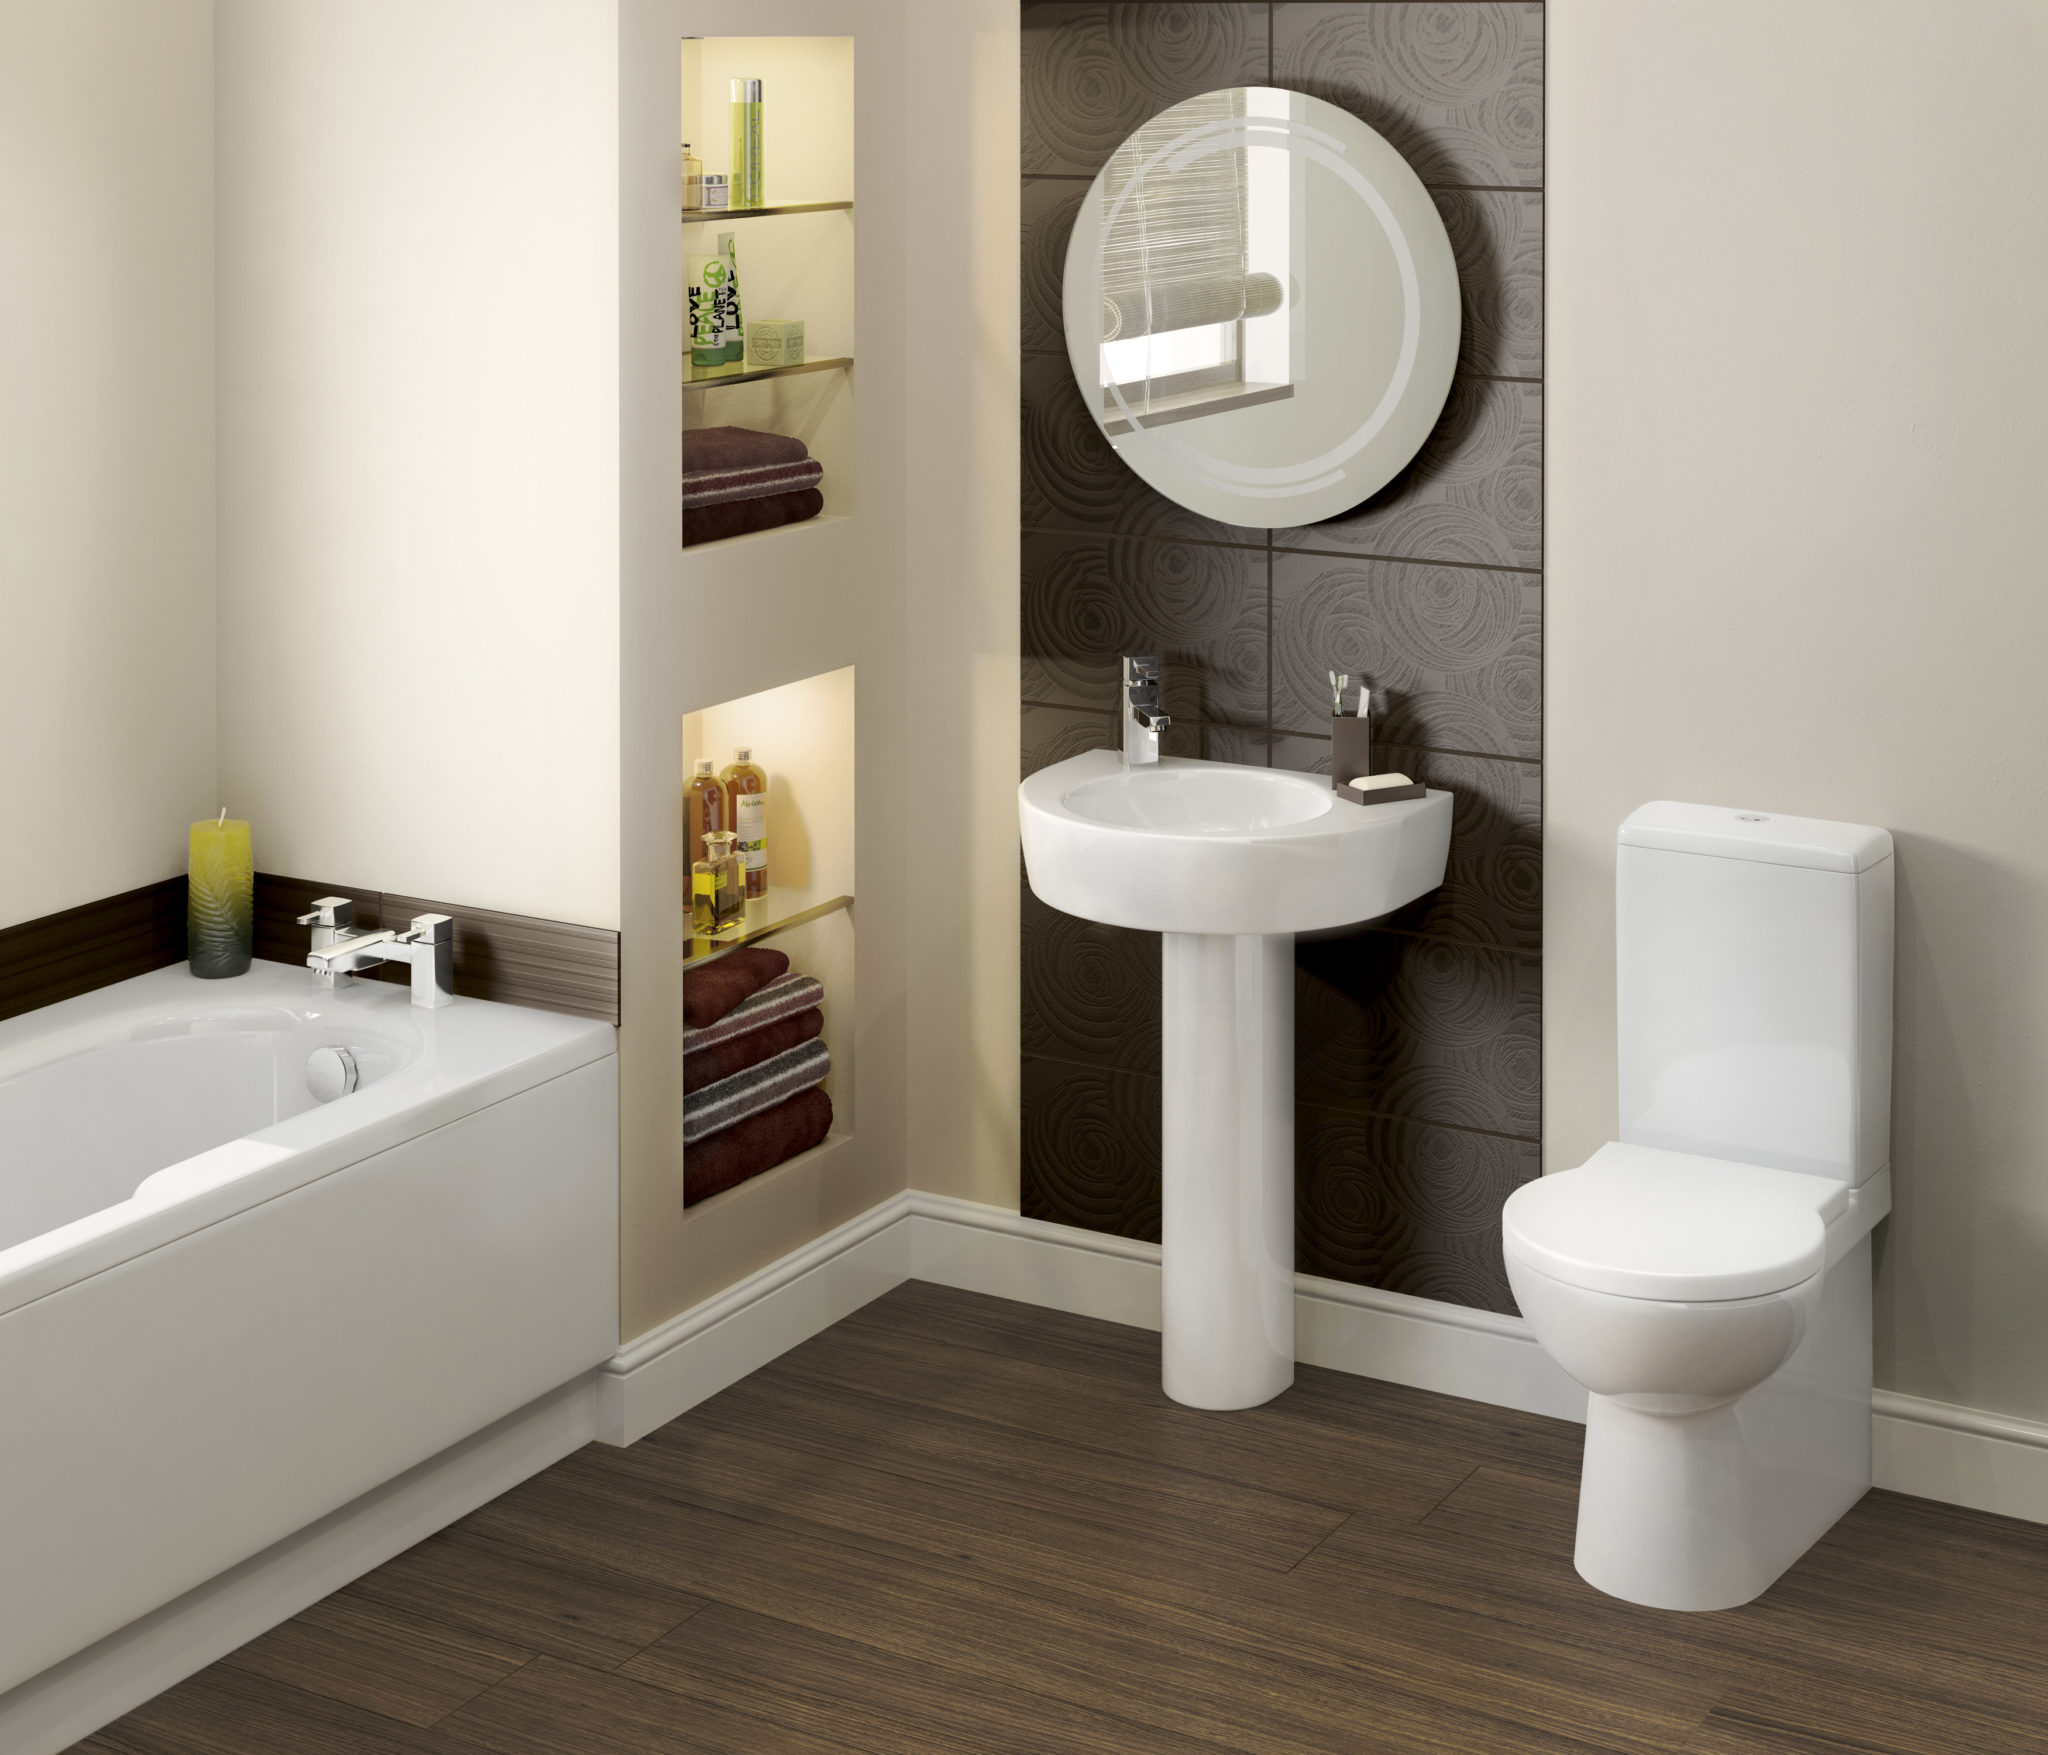 Choosing A Plumbing Contractor For Your Bathroom Remodel IT Landes - Bathroom remodel plumber